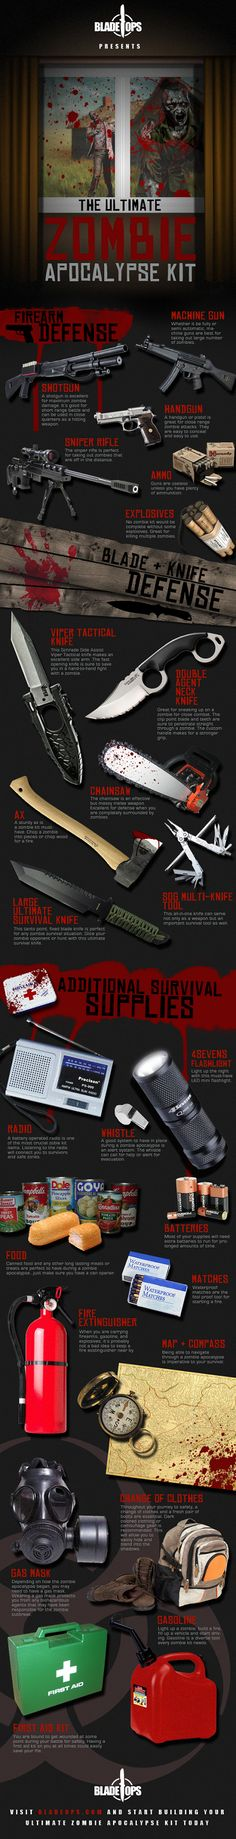 Ya know I love #Zombies! And now I will know how to survive a zombie apocalypse!